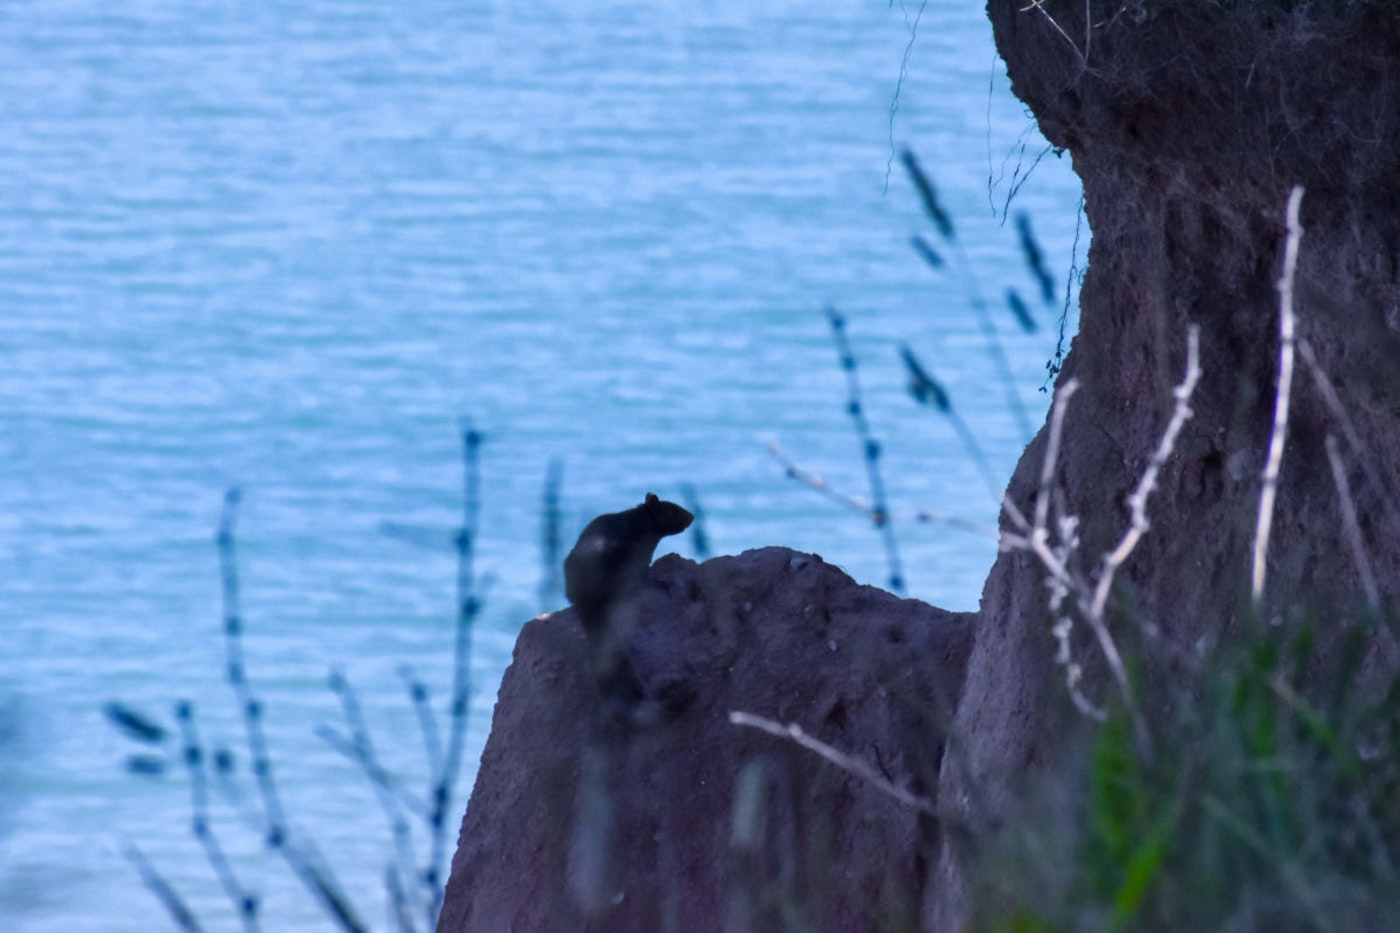 A squirrel on a rocky cliff edge overlooking Lake Michigan